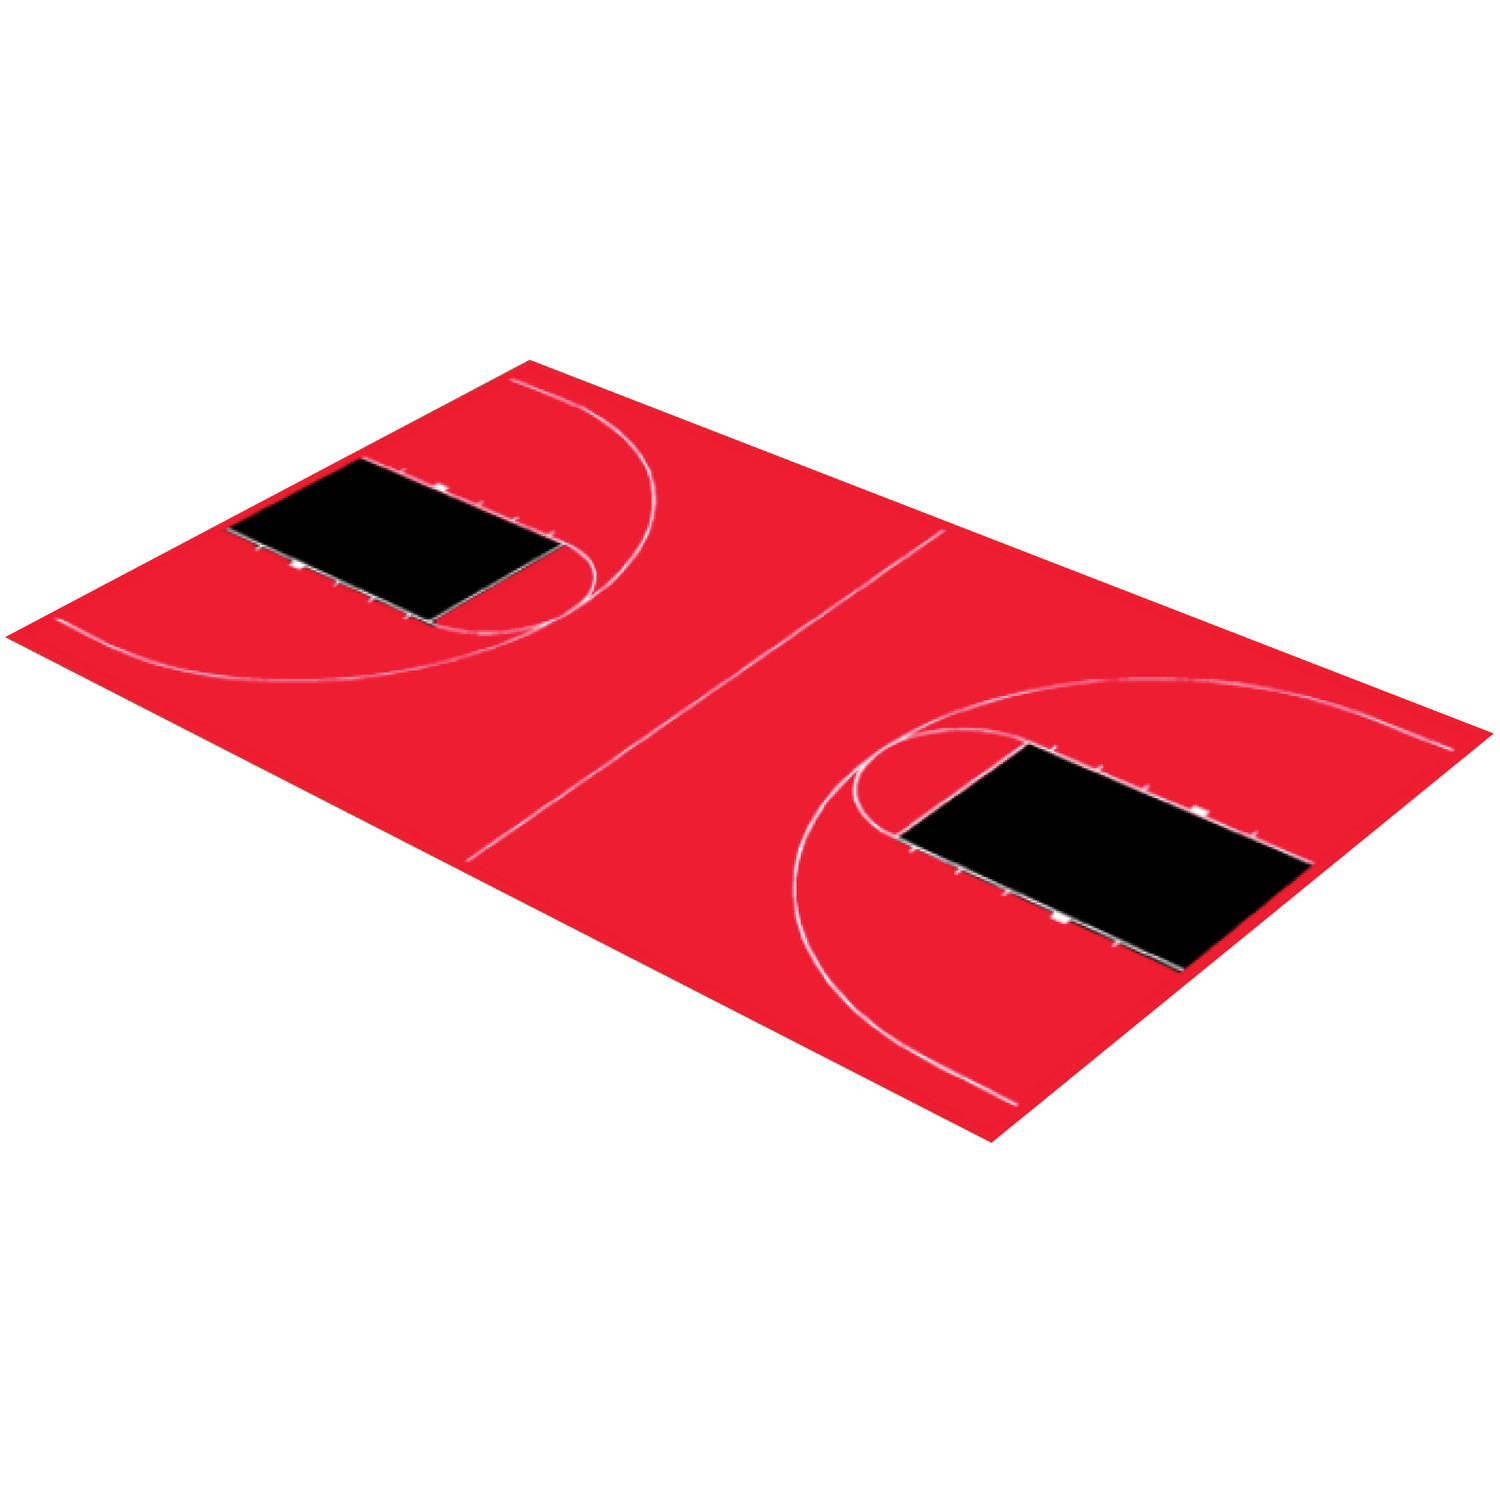 """DuraPlay Full Court Basketball Kit, 44'3"""" x 75'6"""", Red and Black"""